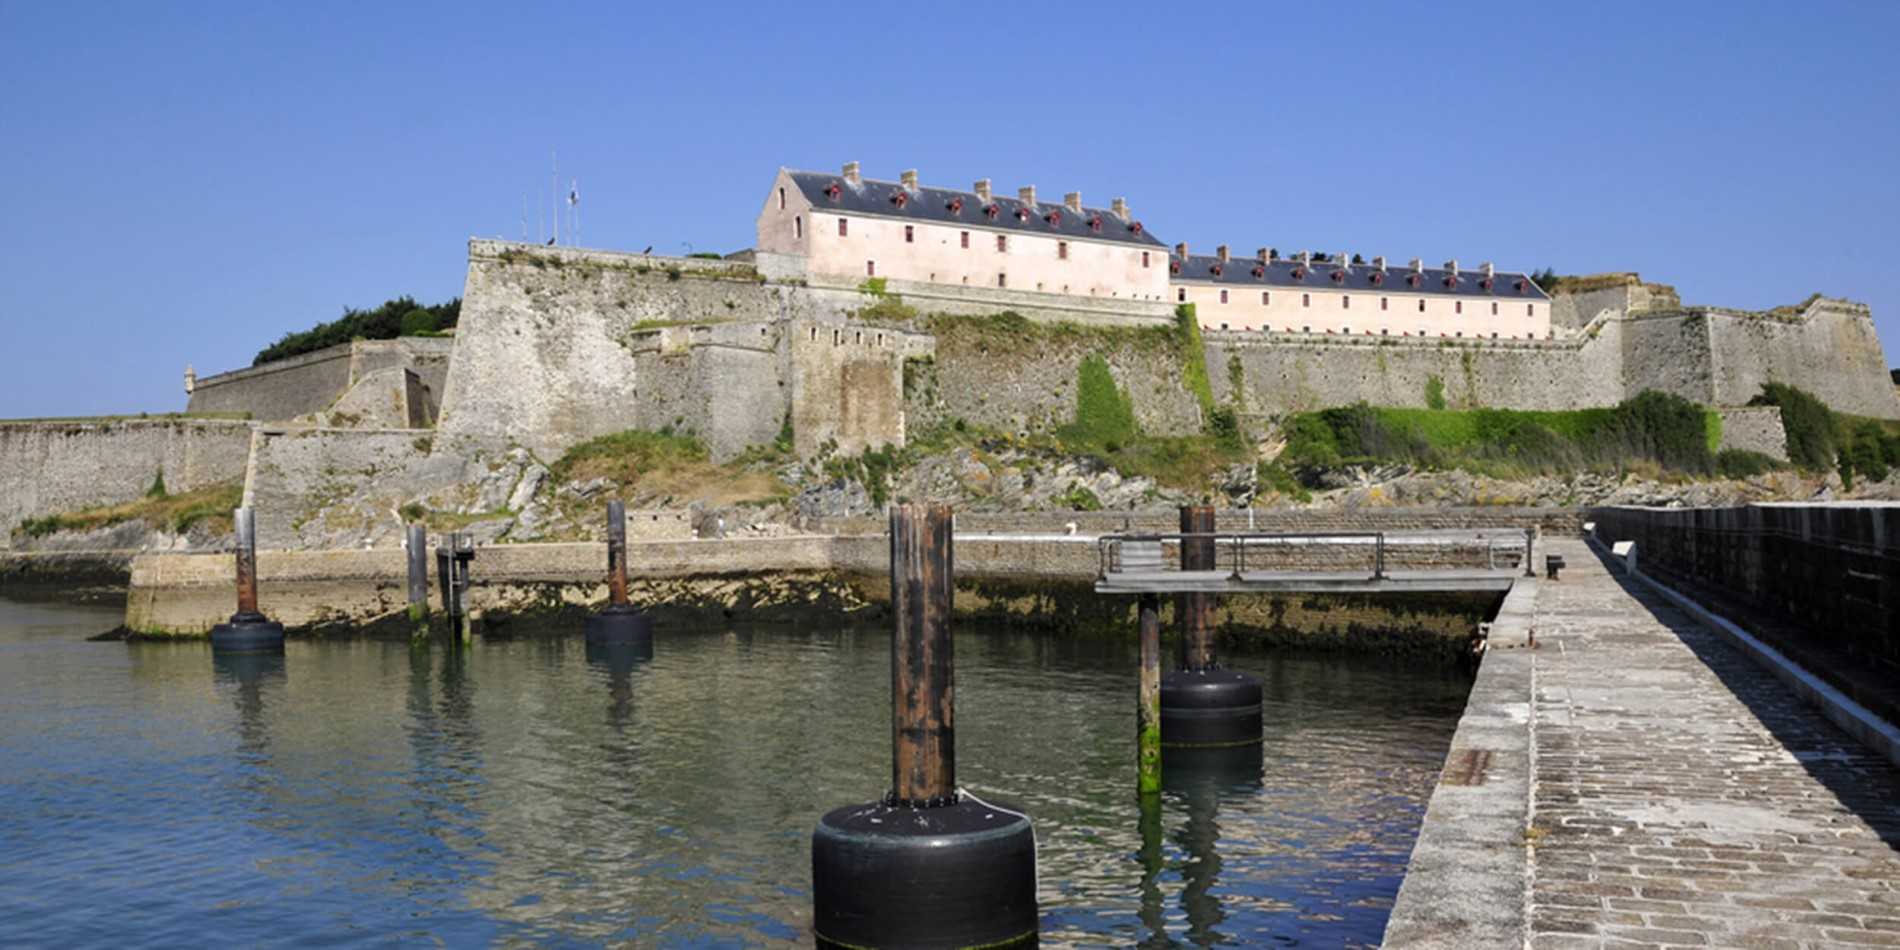 Citadel of Vauban at Belle Ile